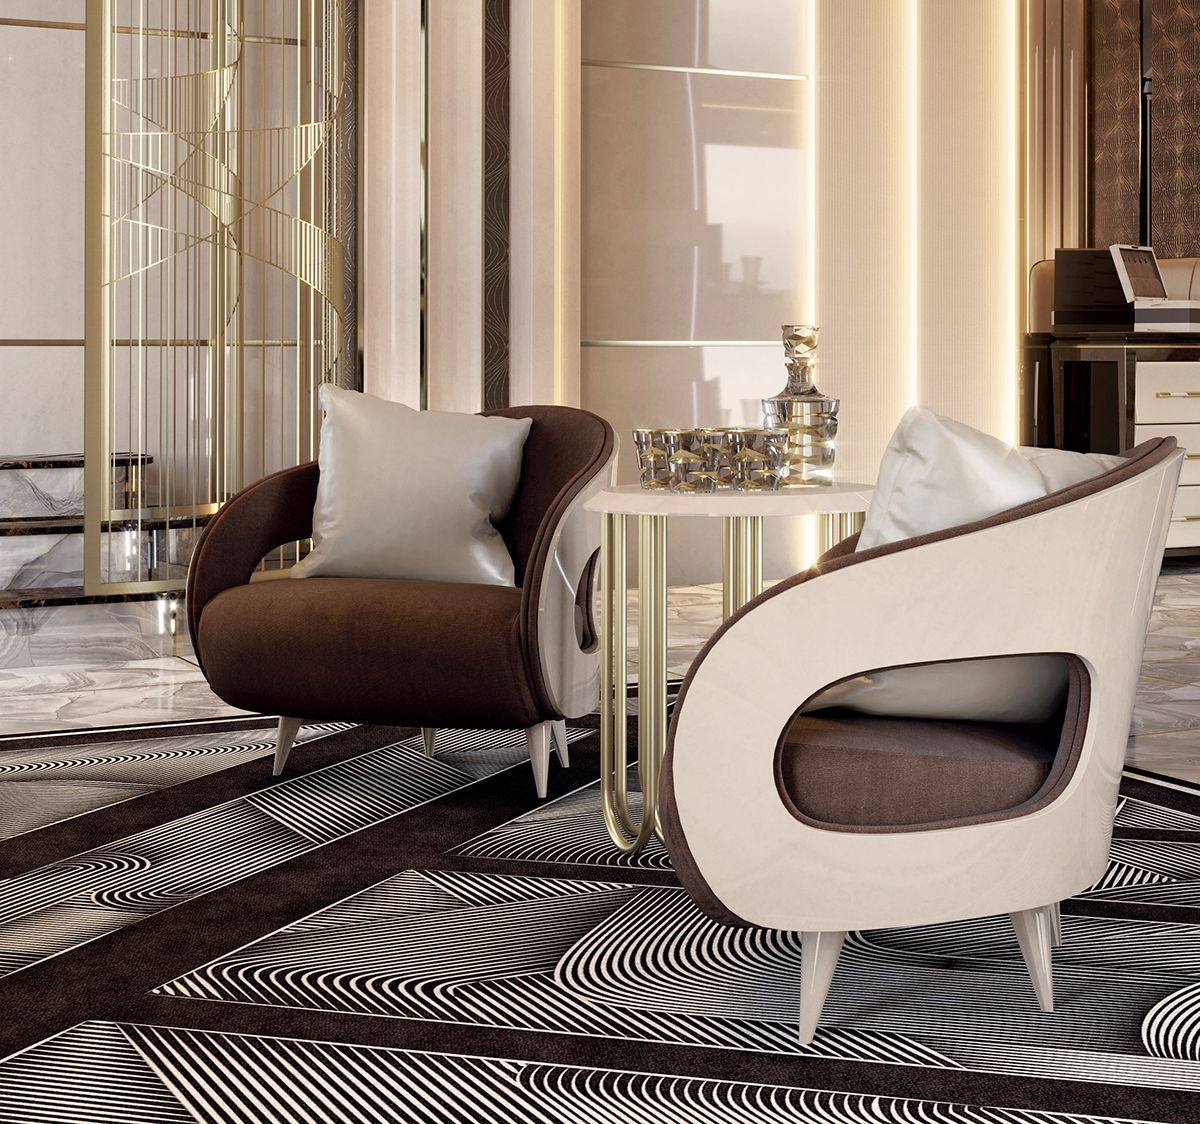 Italian furniture for exclusive and modern design nel 2019 for Negozi mobili italia